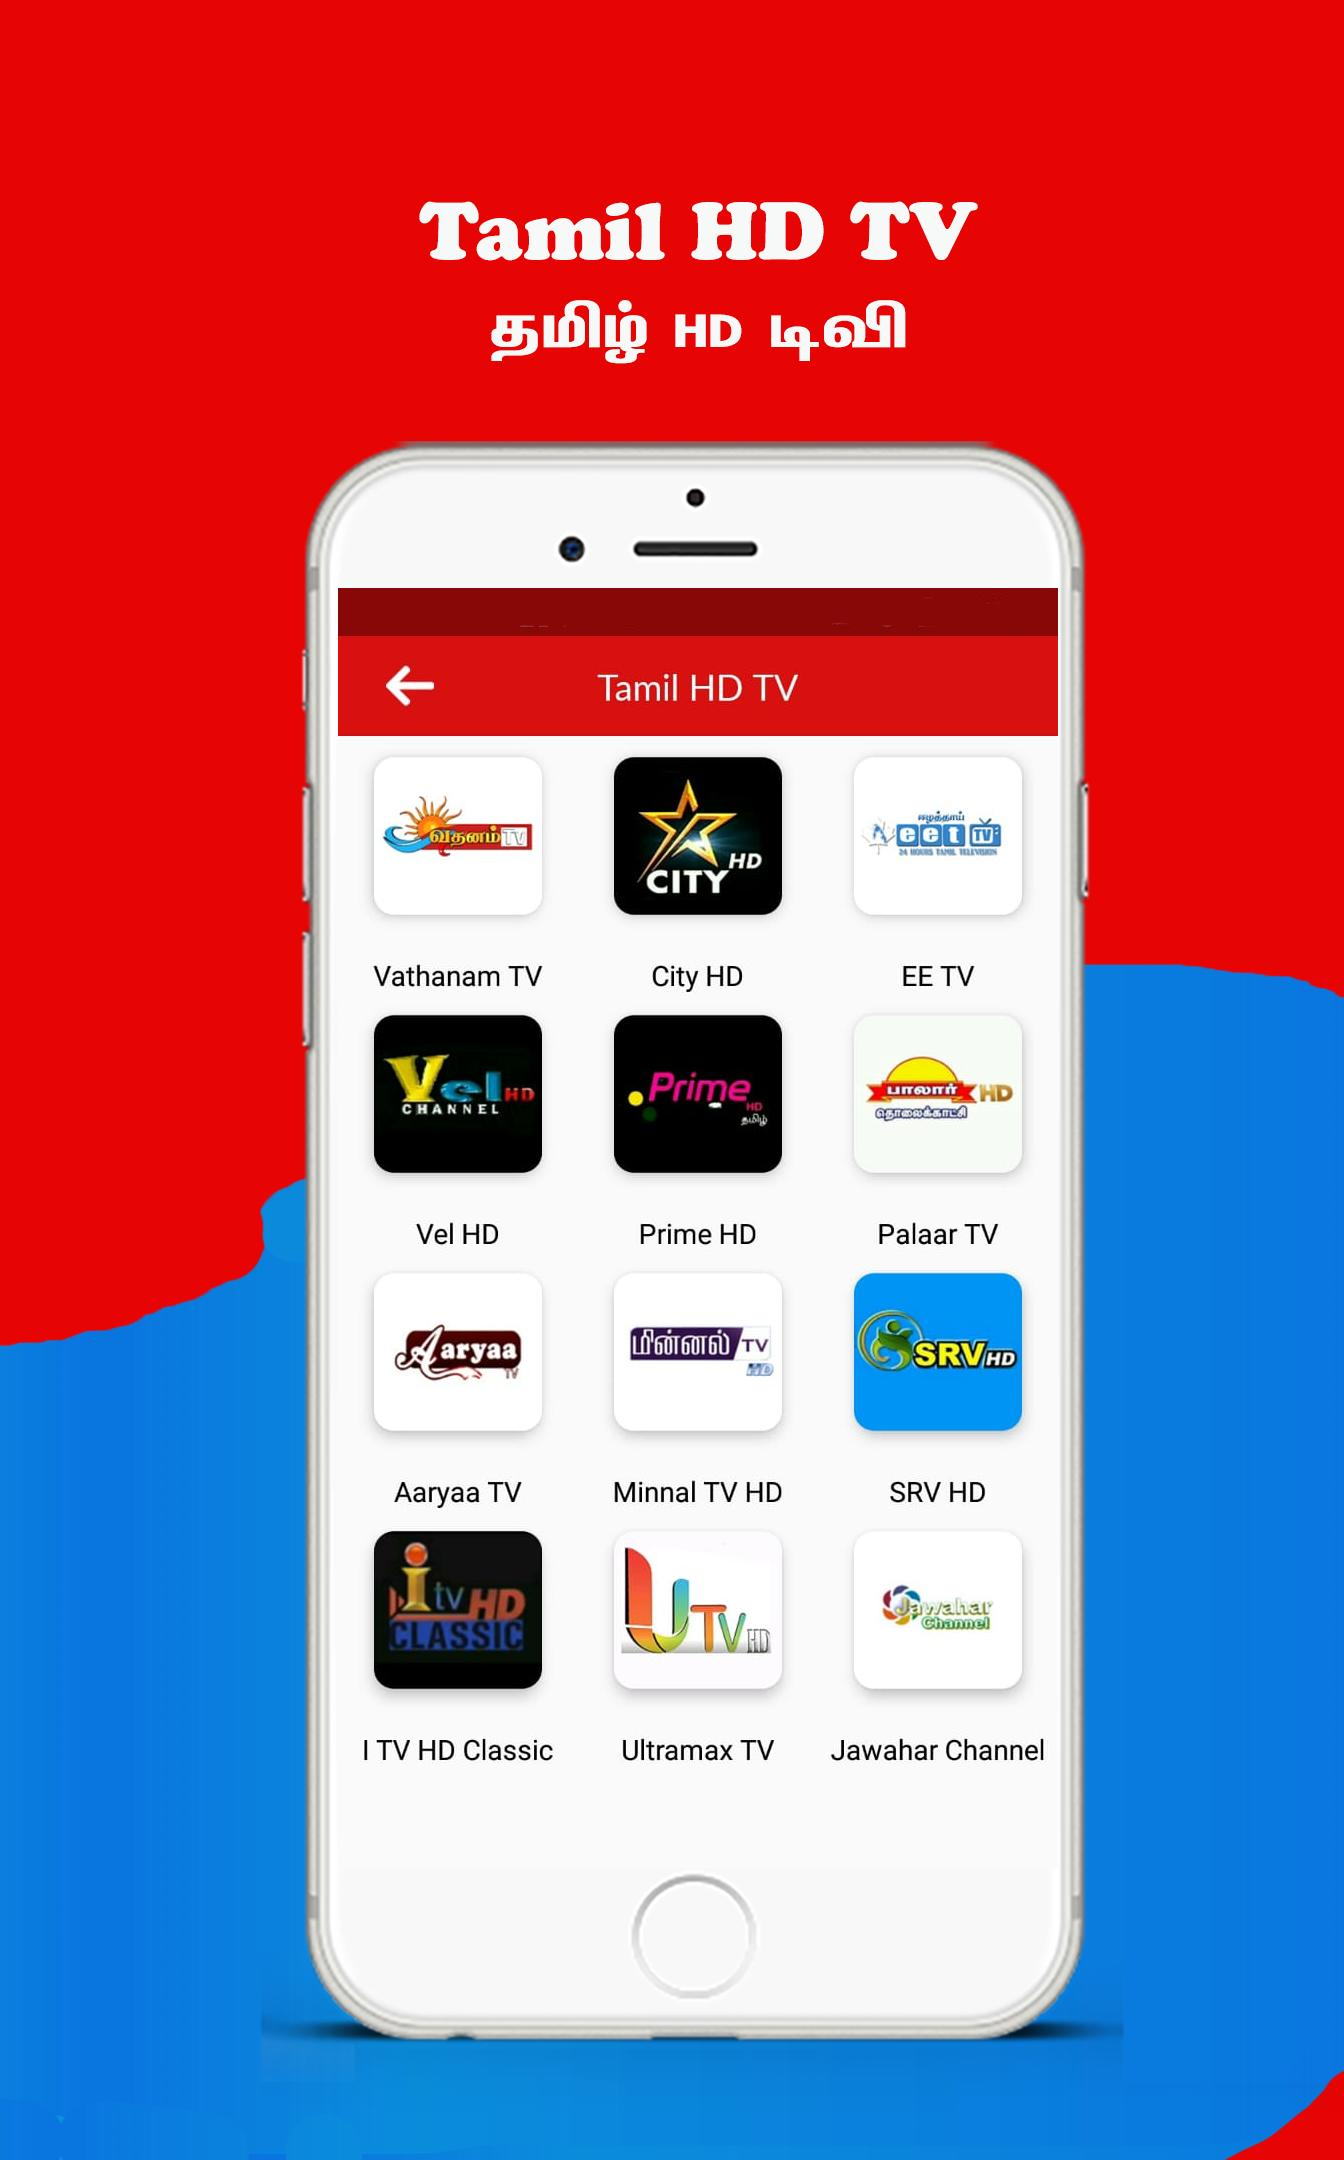 Tamil News Live TV 24X7 for Android - APK Download